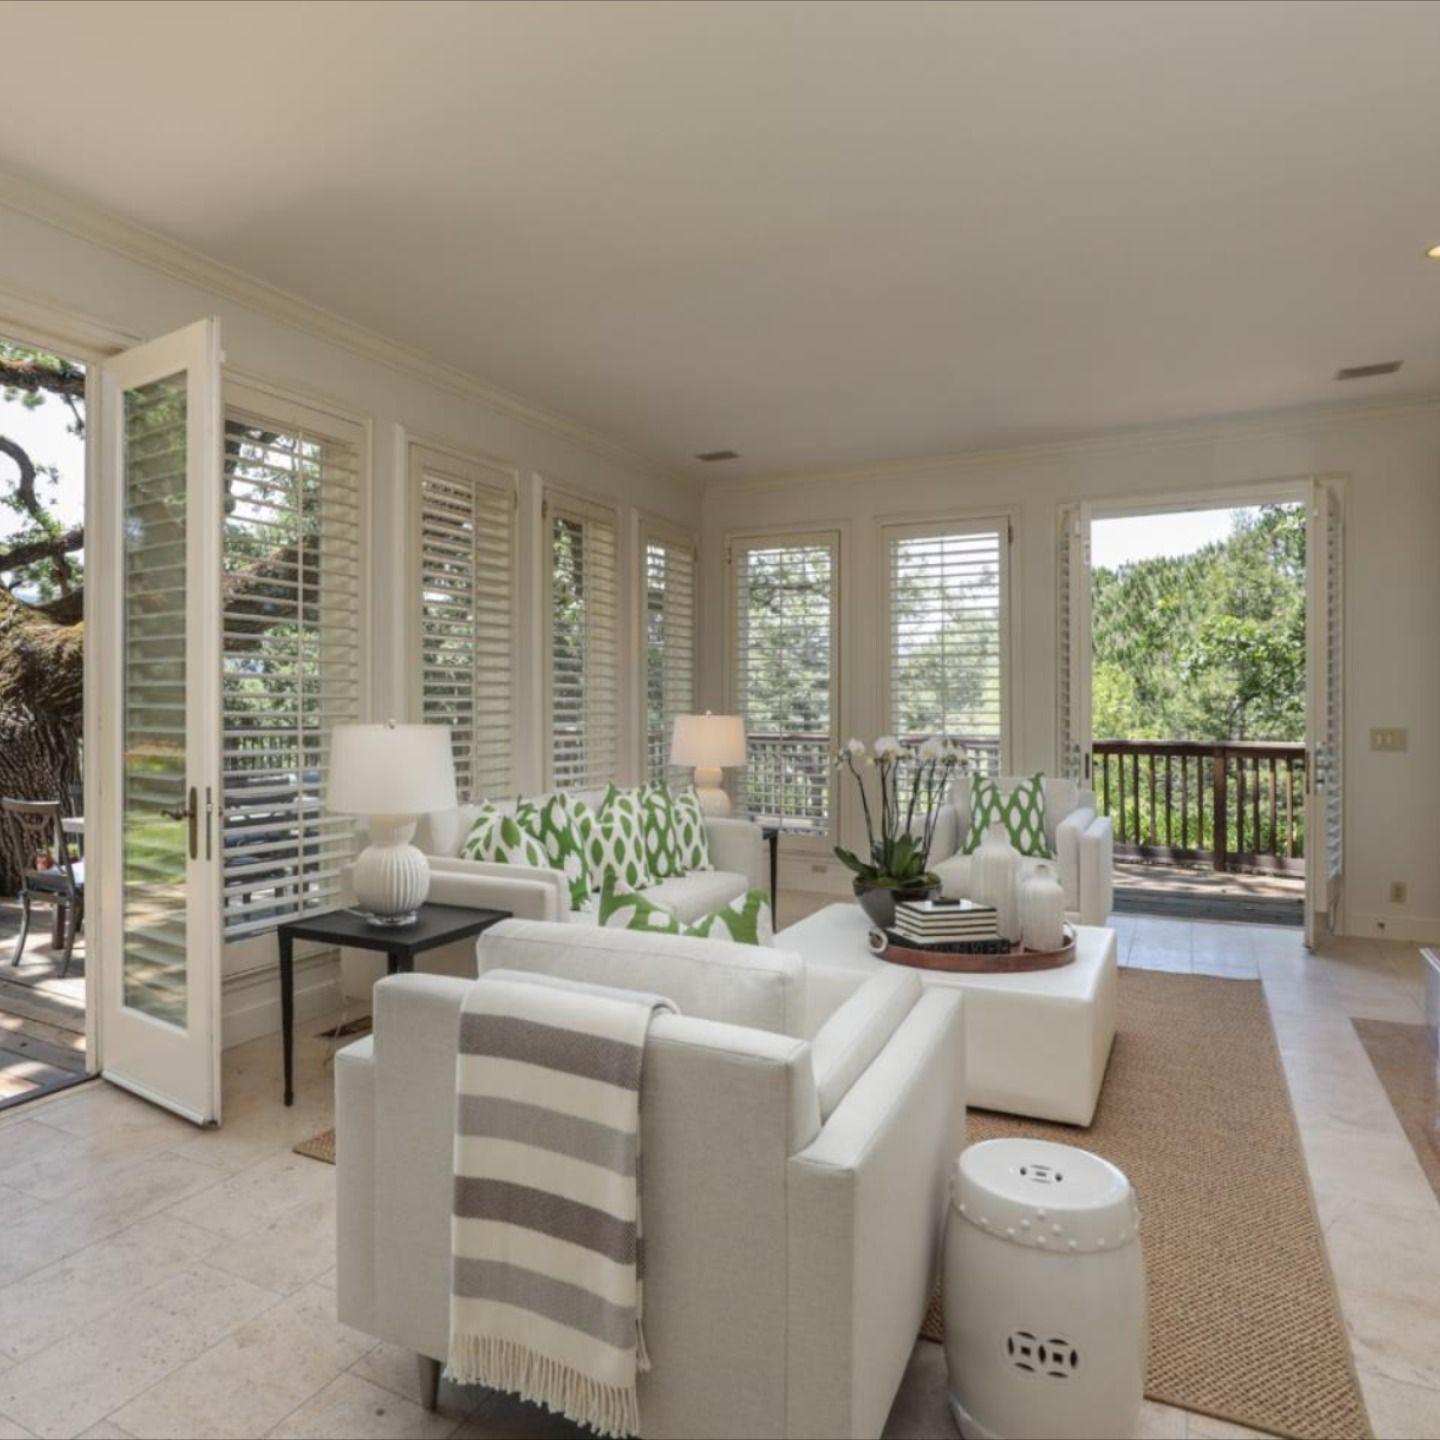 1170 Trinity Dr, Menlo Park, CA 94025 - $4,148,000 3 Beds   3.2 Baths   5,090 Sq. Ft.  Courtesy of : Tom Lemieux - Compass  For questions or for private showing contact: Carolyn Botts Compass P: (650) 207-0246 E: carolynb@apr.com  #homeforsaleinMenloPark #MenloParkHomes #houseforsale #realtor #compass  #luxuryrealestate #realestateagent #dreamhome #milliondollarhomes #realestatemarket #findhome  #firsttimehomebuyers  #siliconvalleyhomes #siliconvalley #carolynbotts #carolynbottsrealtor